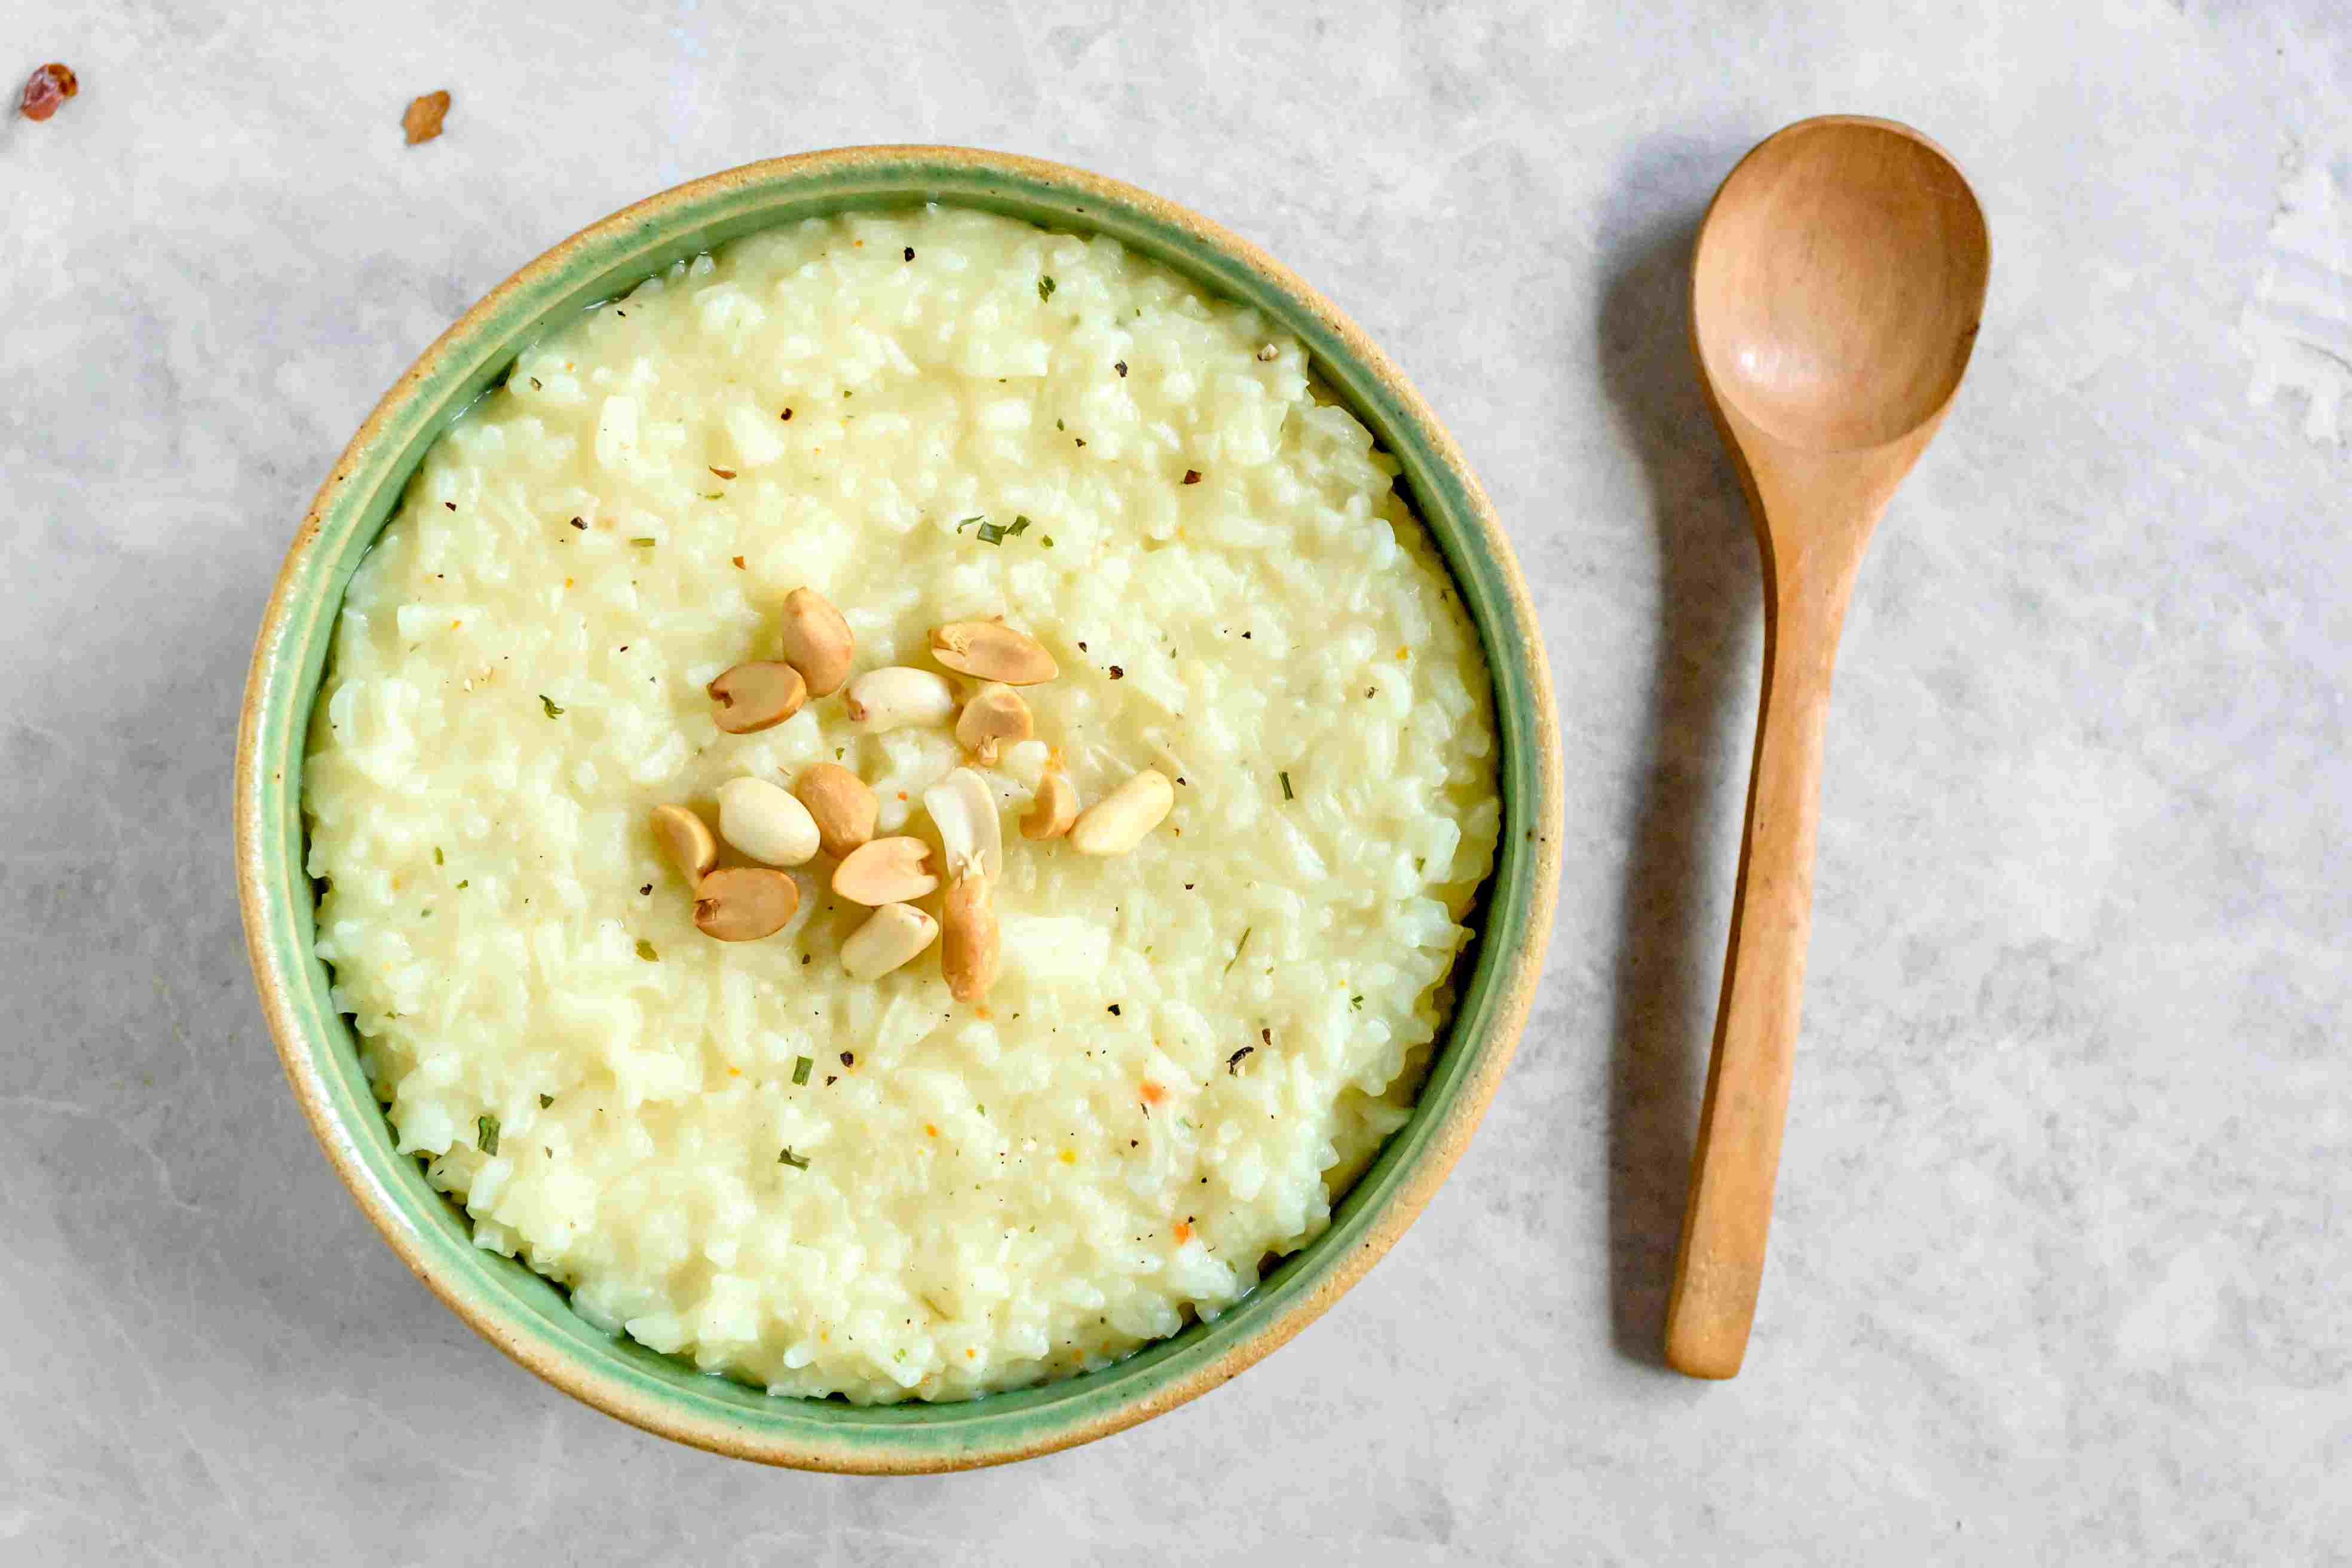 Basic congee rice topped with nuts